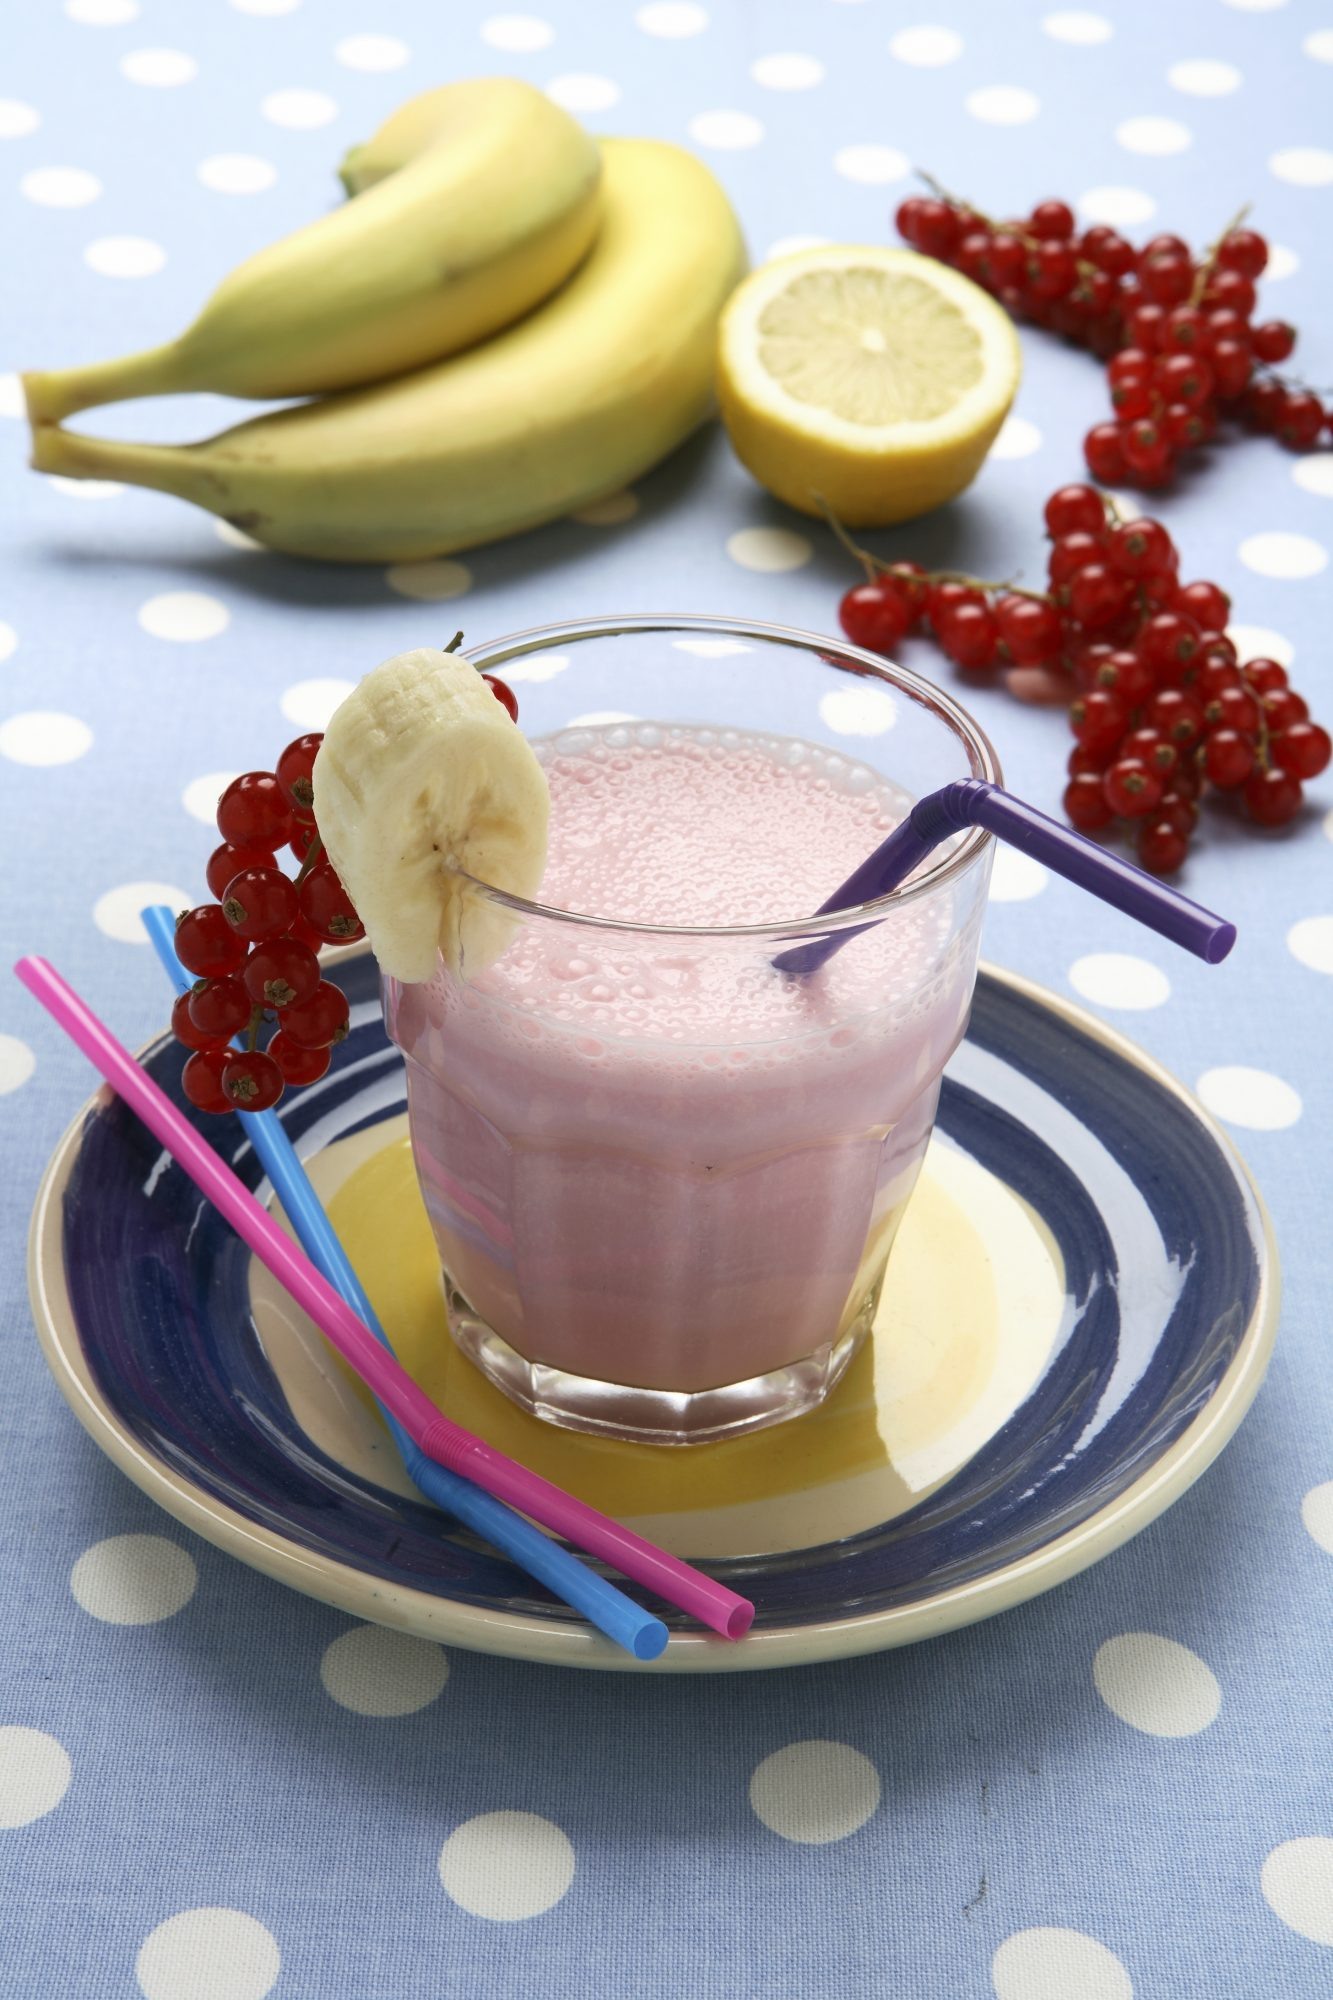 Banana and currant smoothie